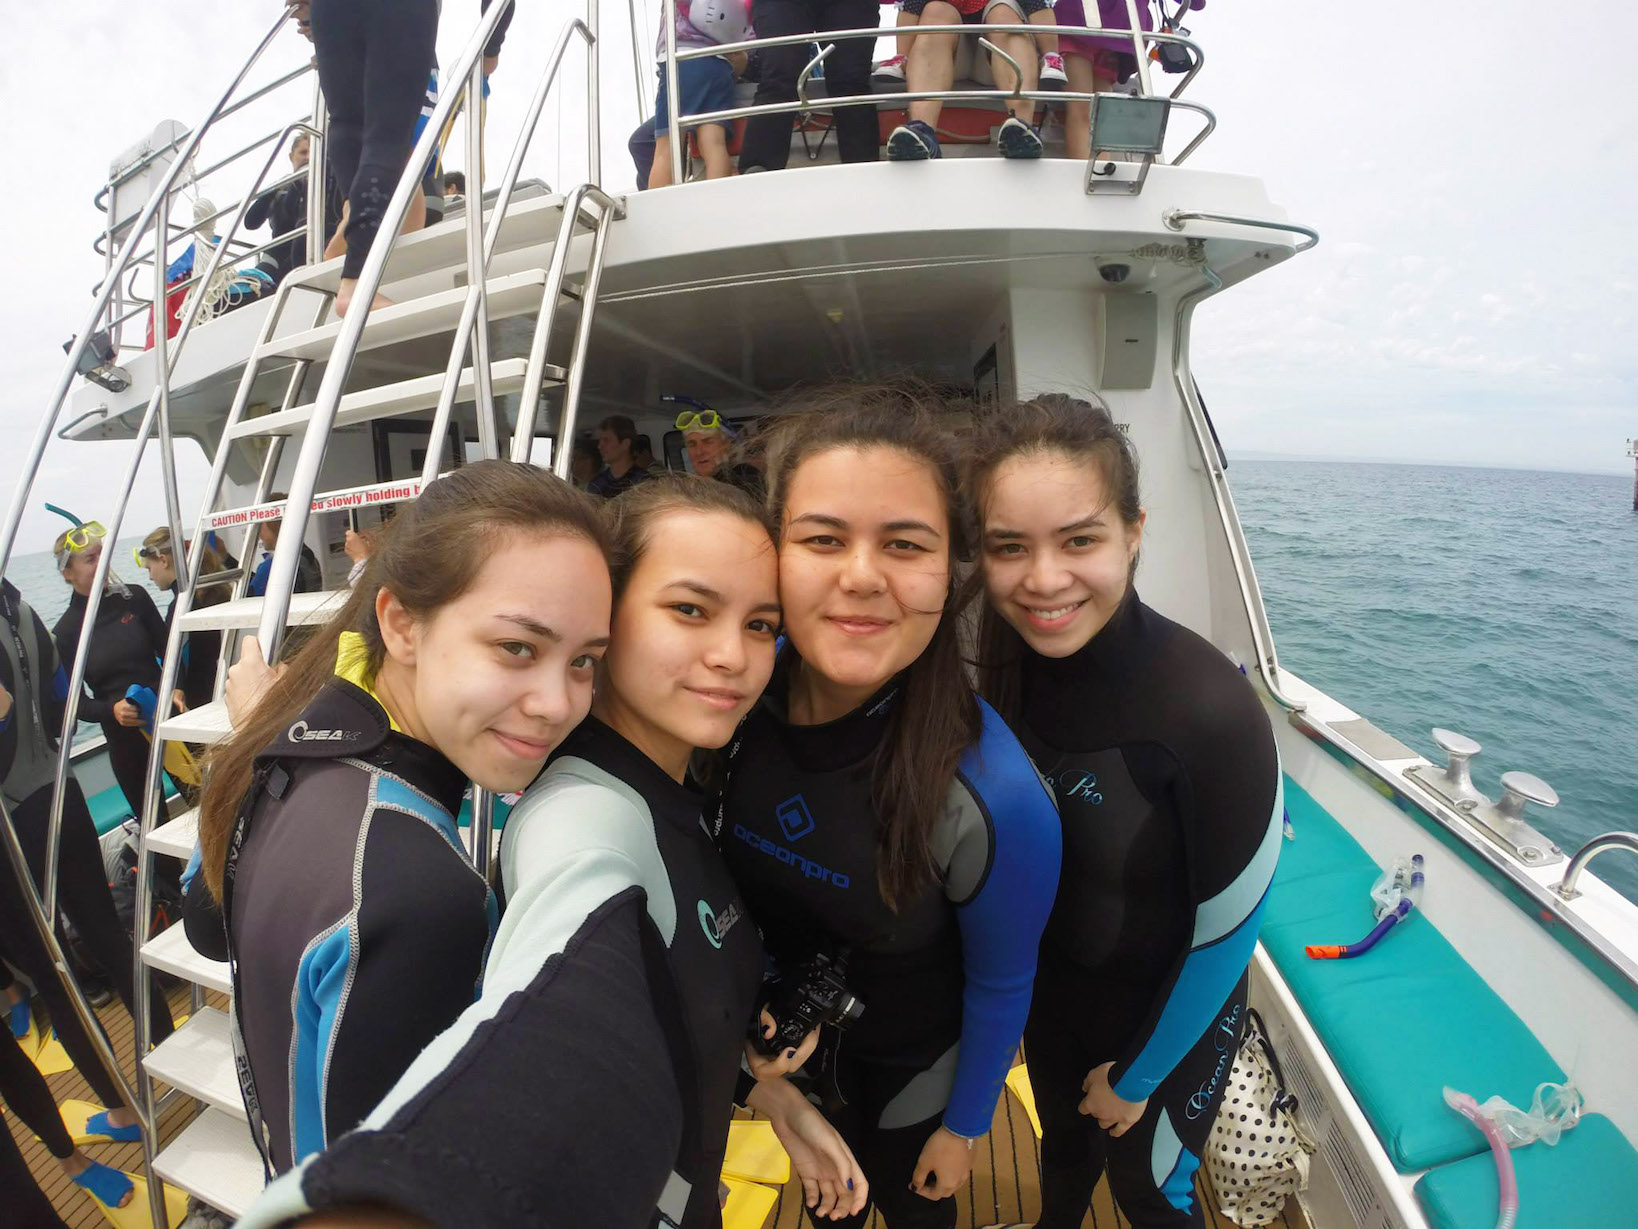 Swimming with dolphins and seals in Sorrento with family